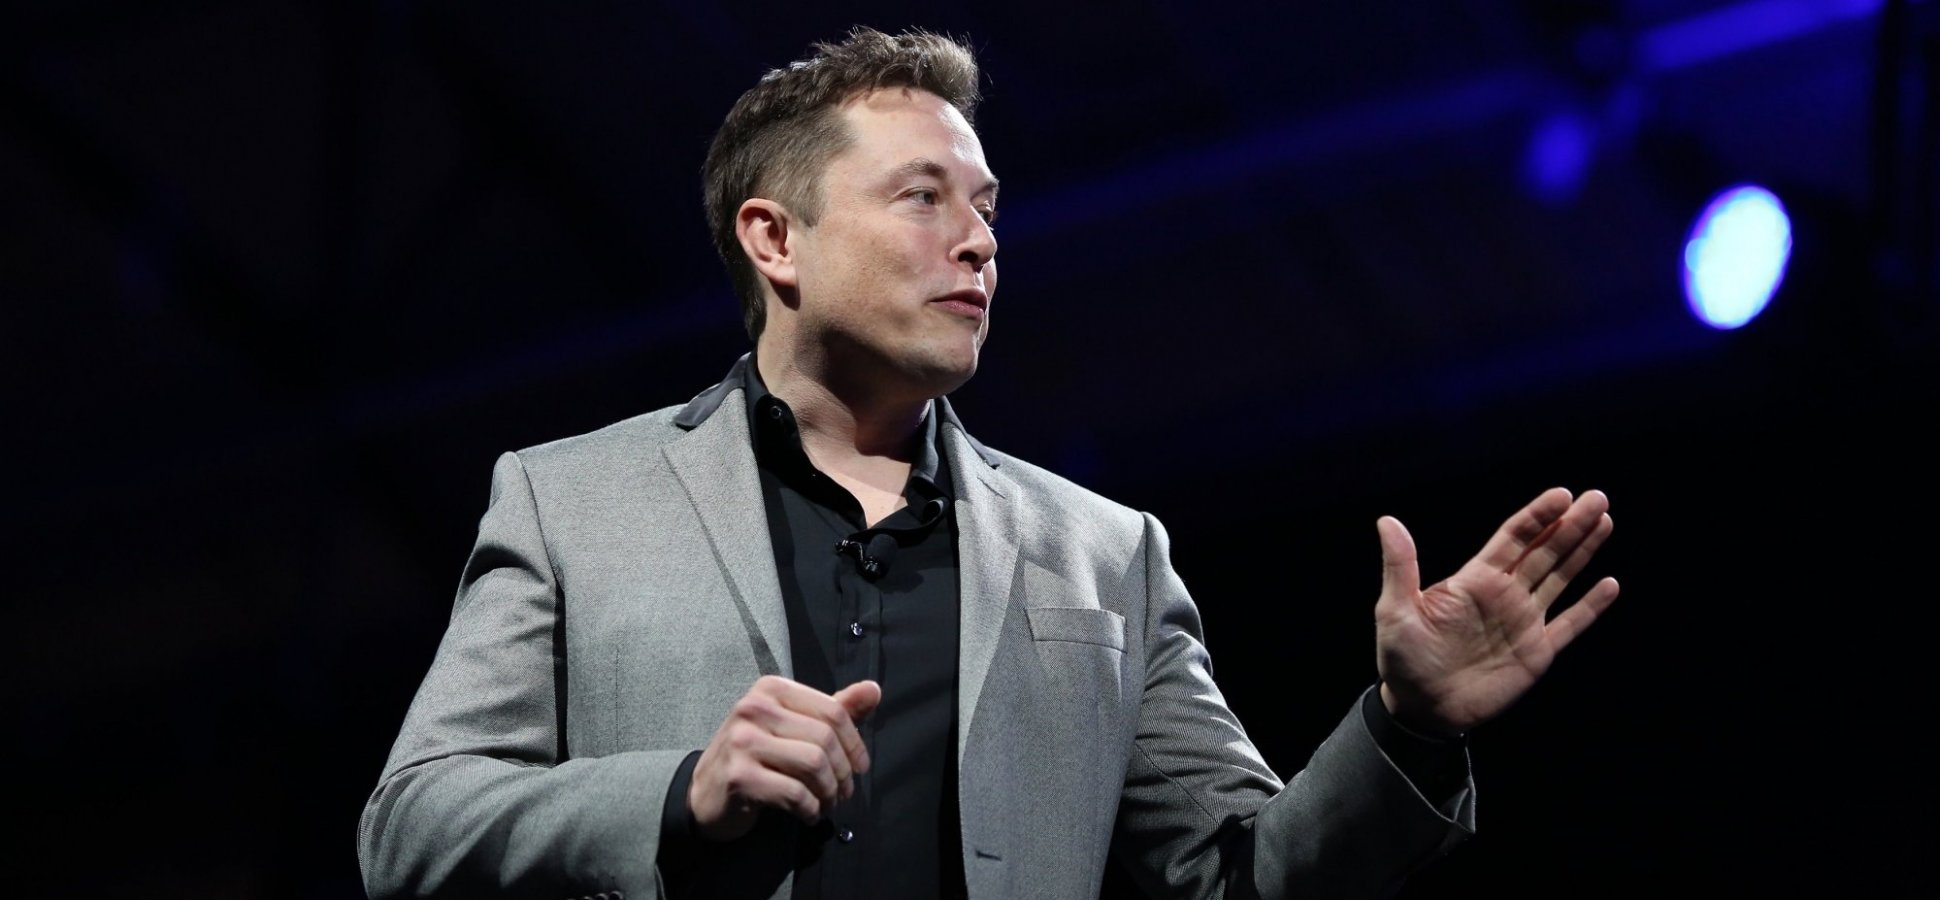 Elon Musk to Tesla Employees: Start Walking Out of Meetings, and Cut the Jargon